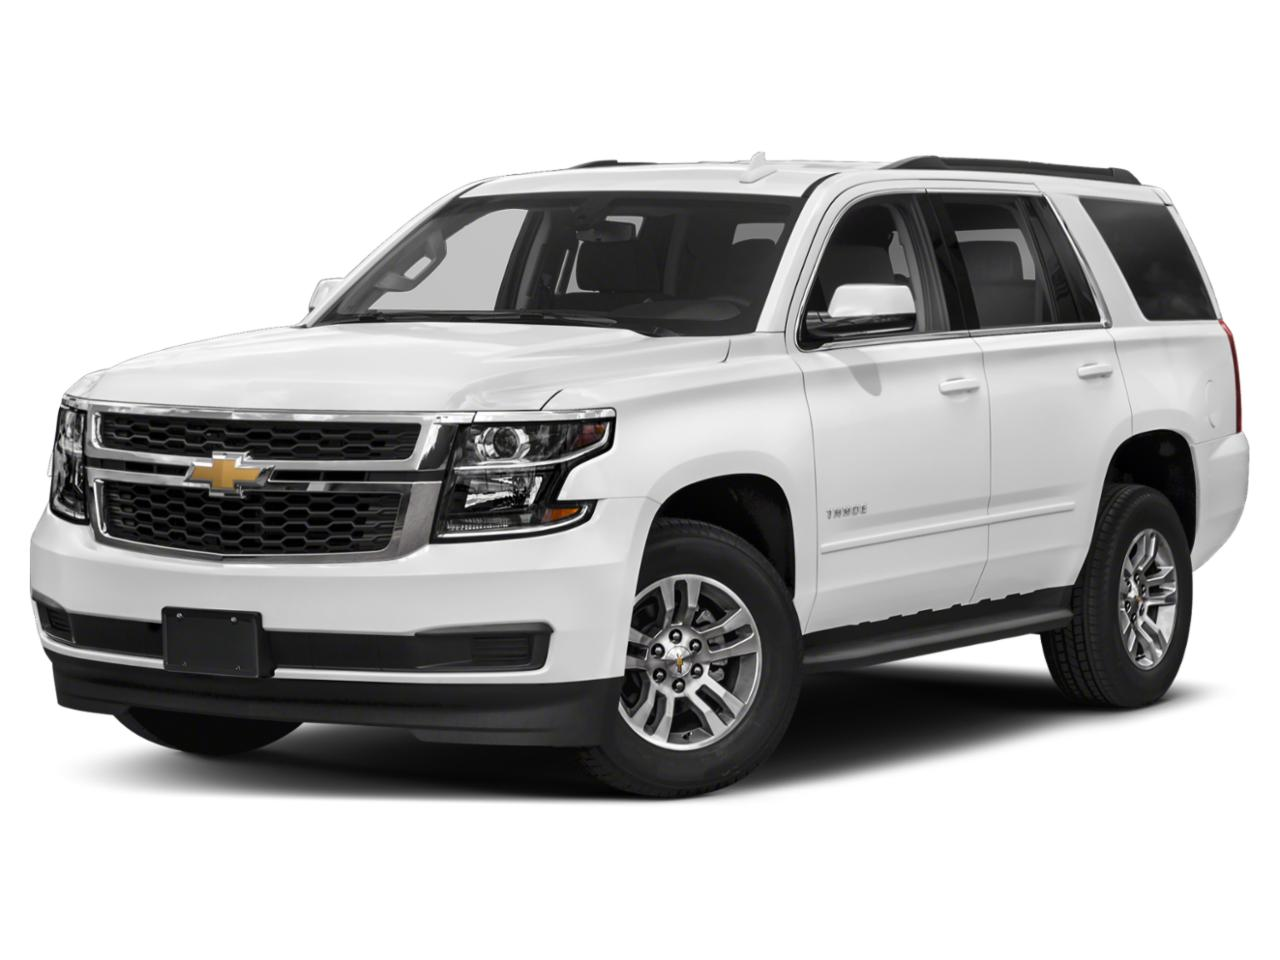 Summit White 2020 Chevrolet Tahoe LT SUV Lexington NC